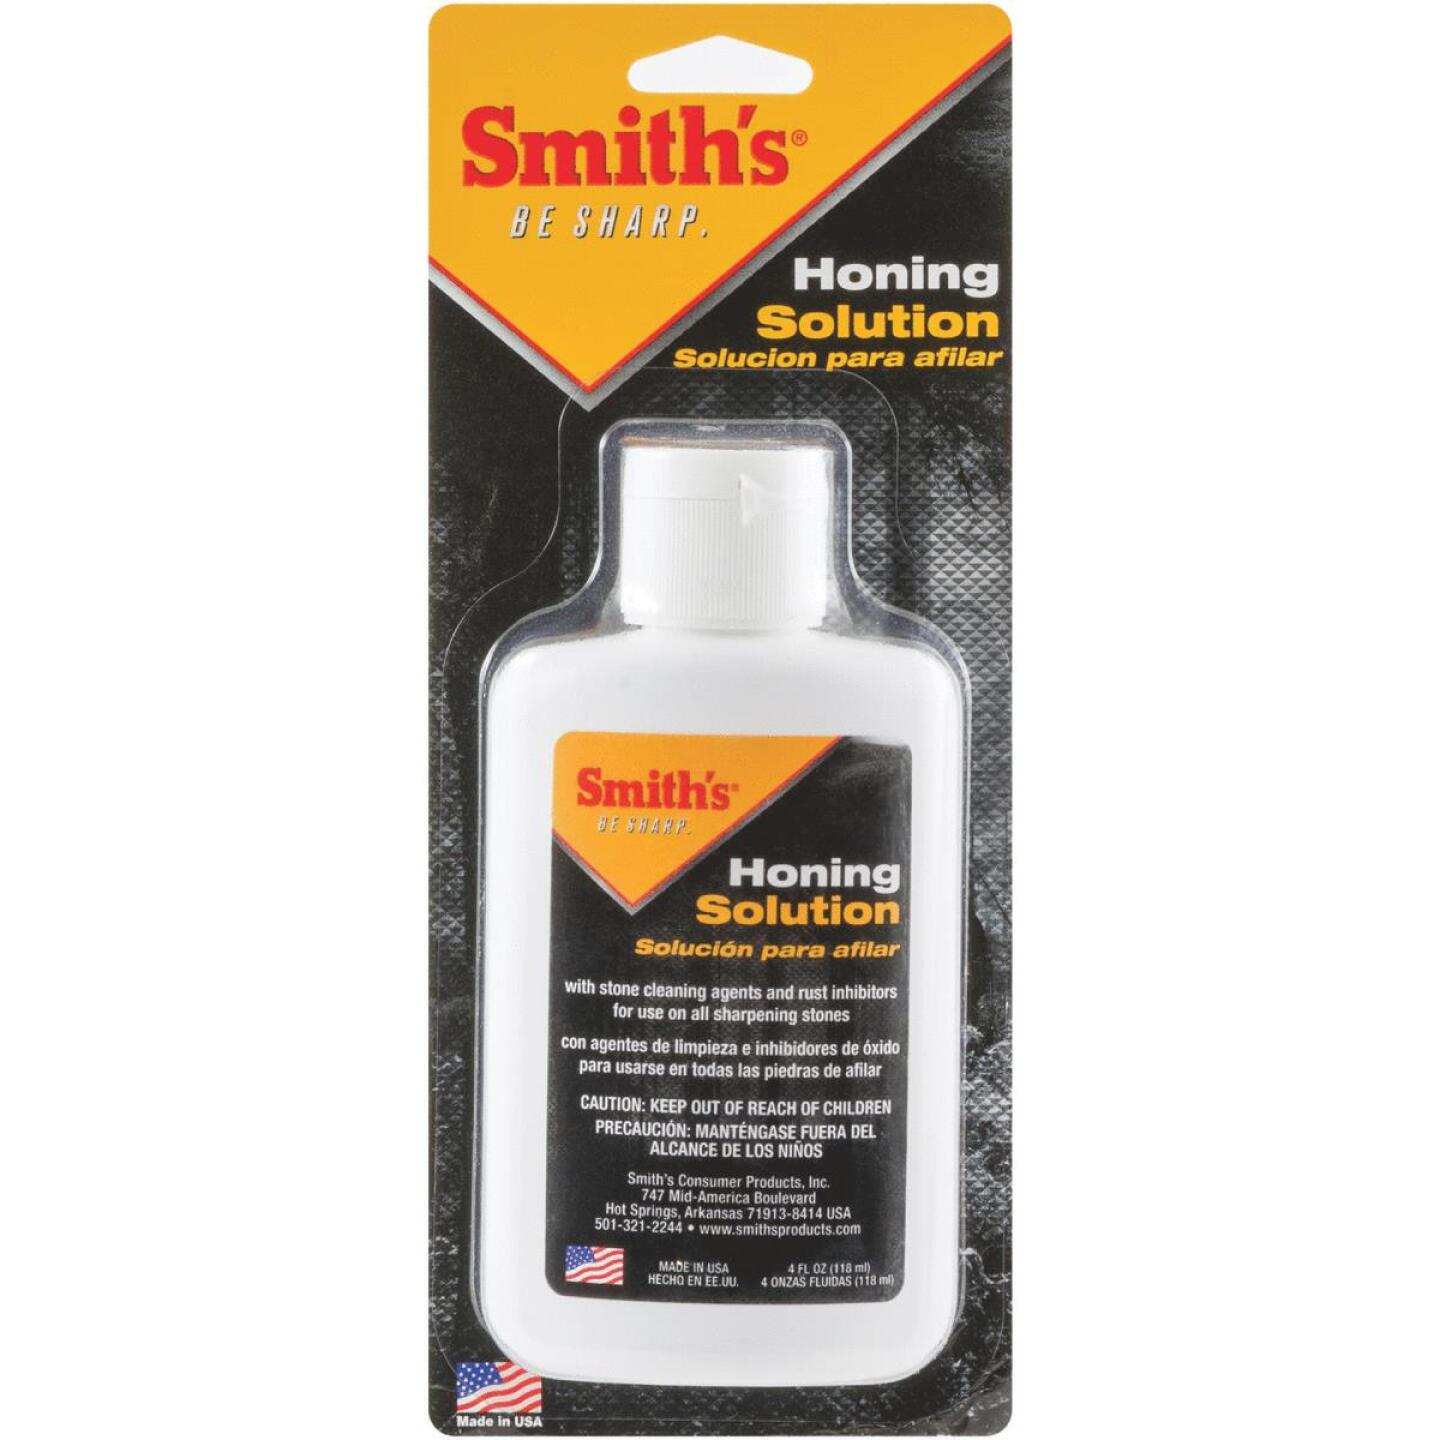 Smith's 4 Oz. Honing Oil Solution Image 1